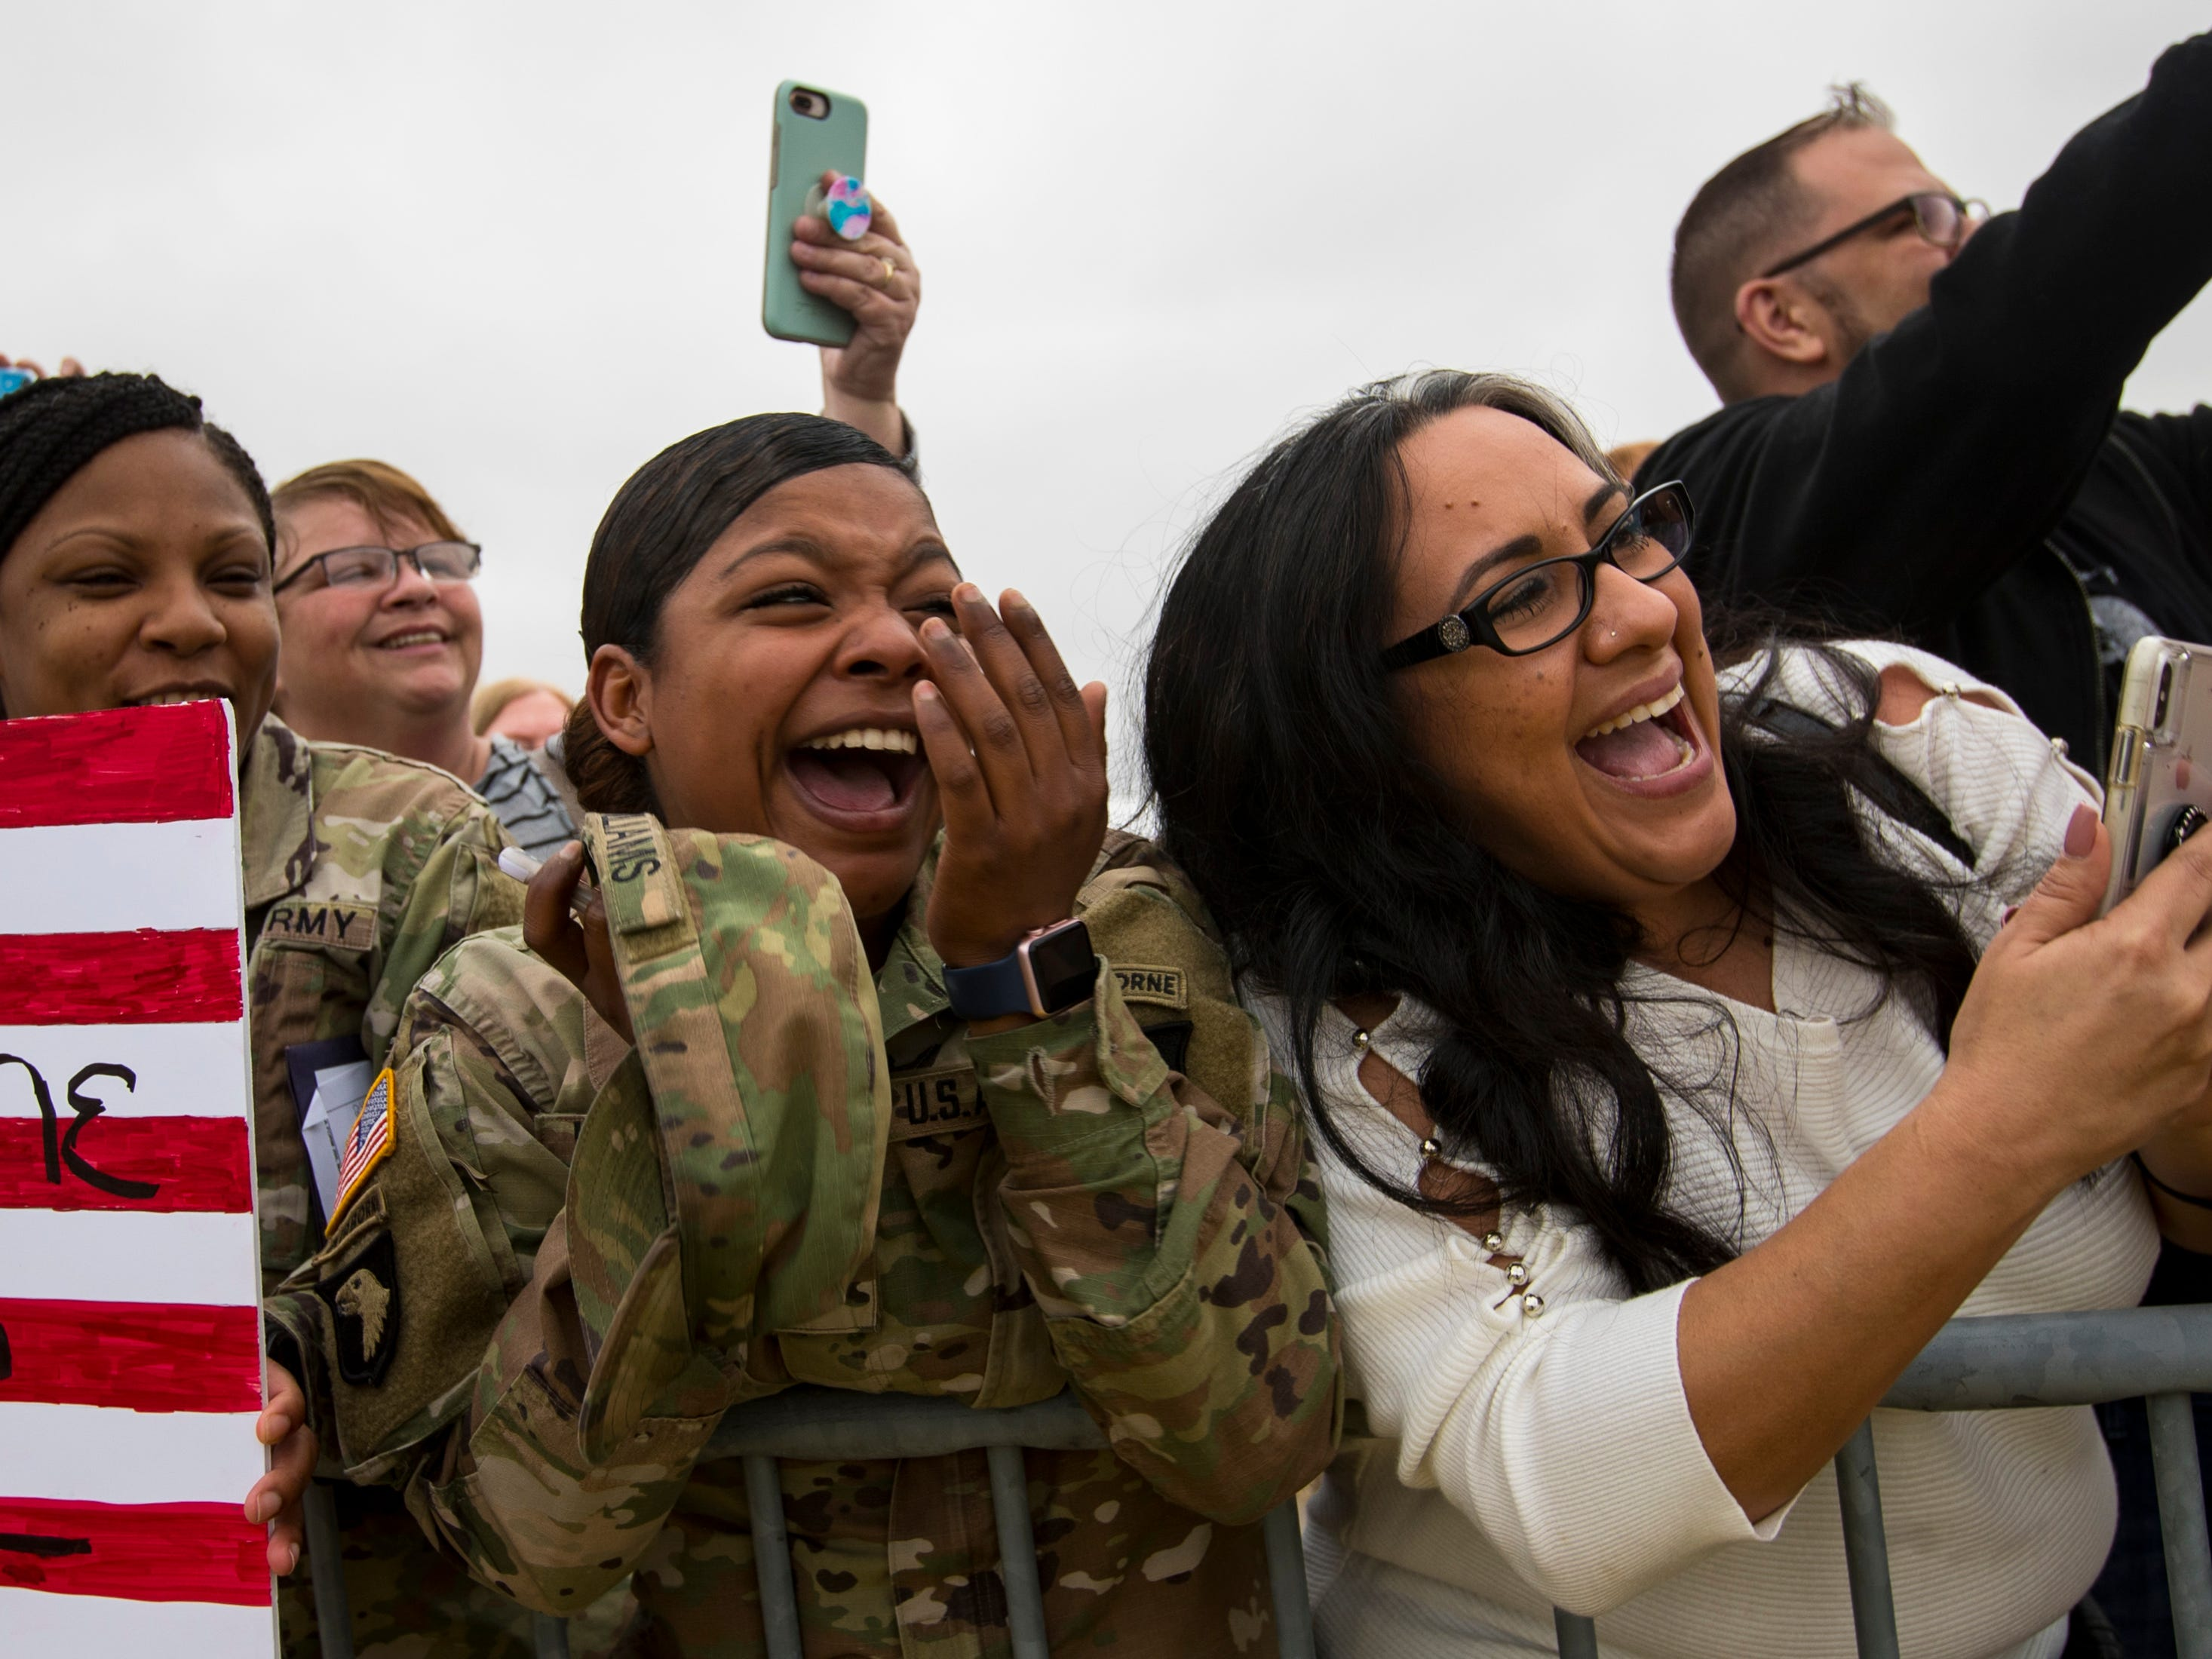 Private First Class Danielle Williams reacts to seeing a friend deplane during the welcome home ceremony for members of the 101st Combat Aviation Brigade at Fort Campbell in Clarksville on Tuesday, Feb. 5, 2019. The soldiers were returning from a nine-month deployment to Afghanistan.